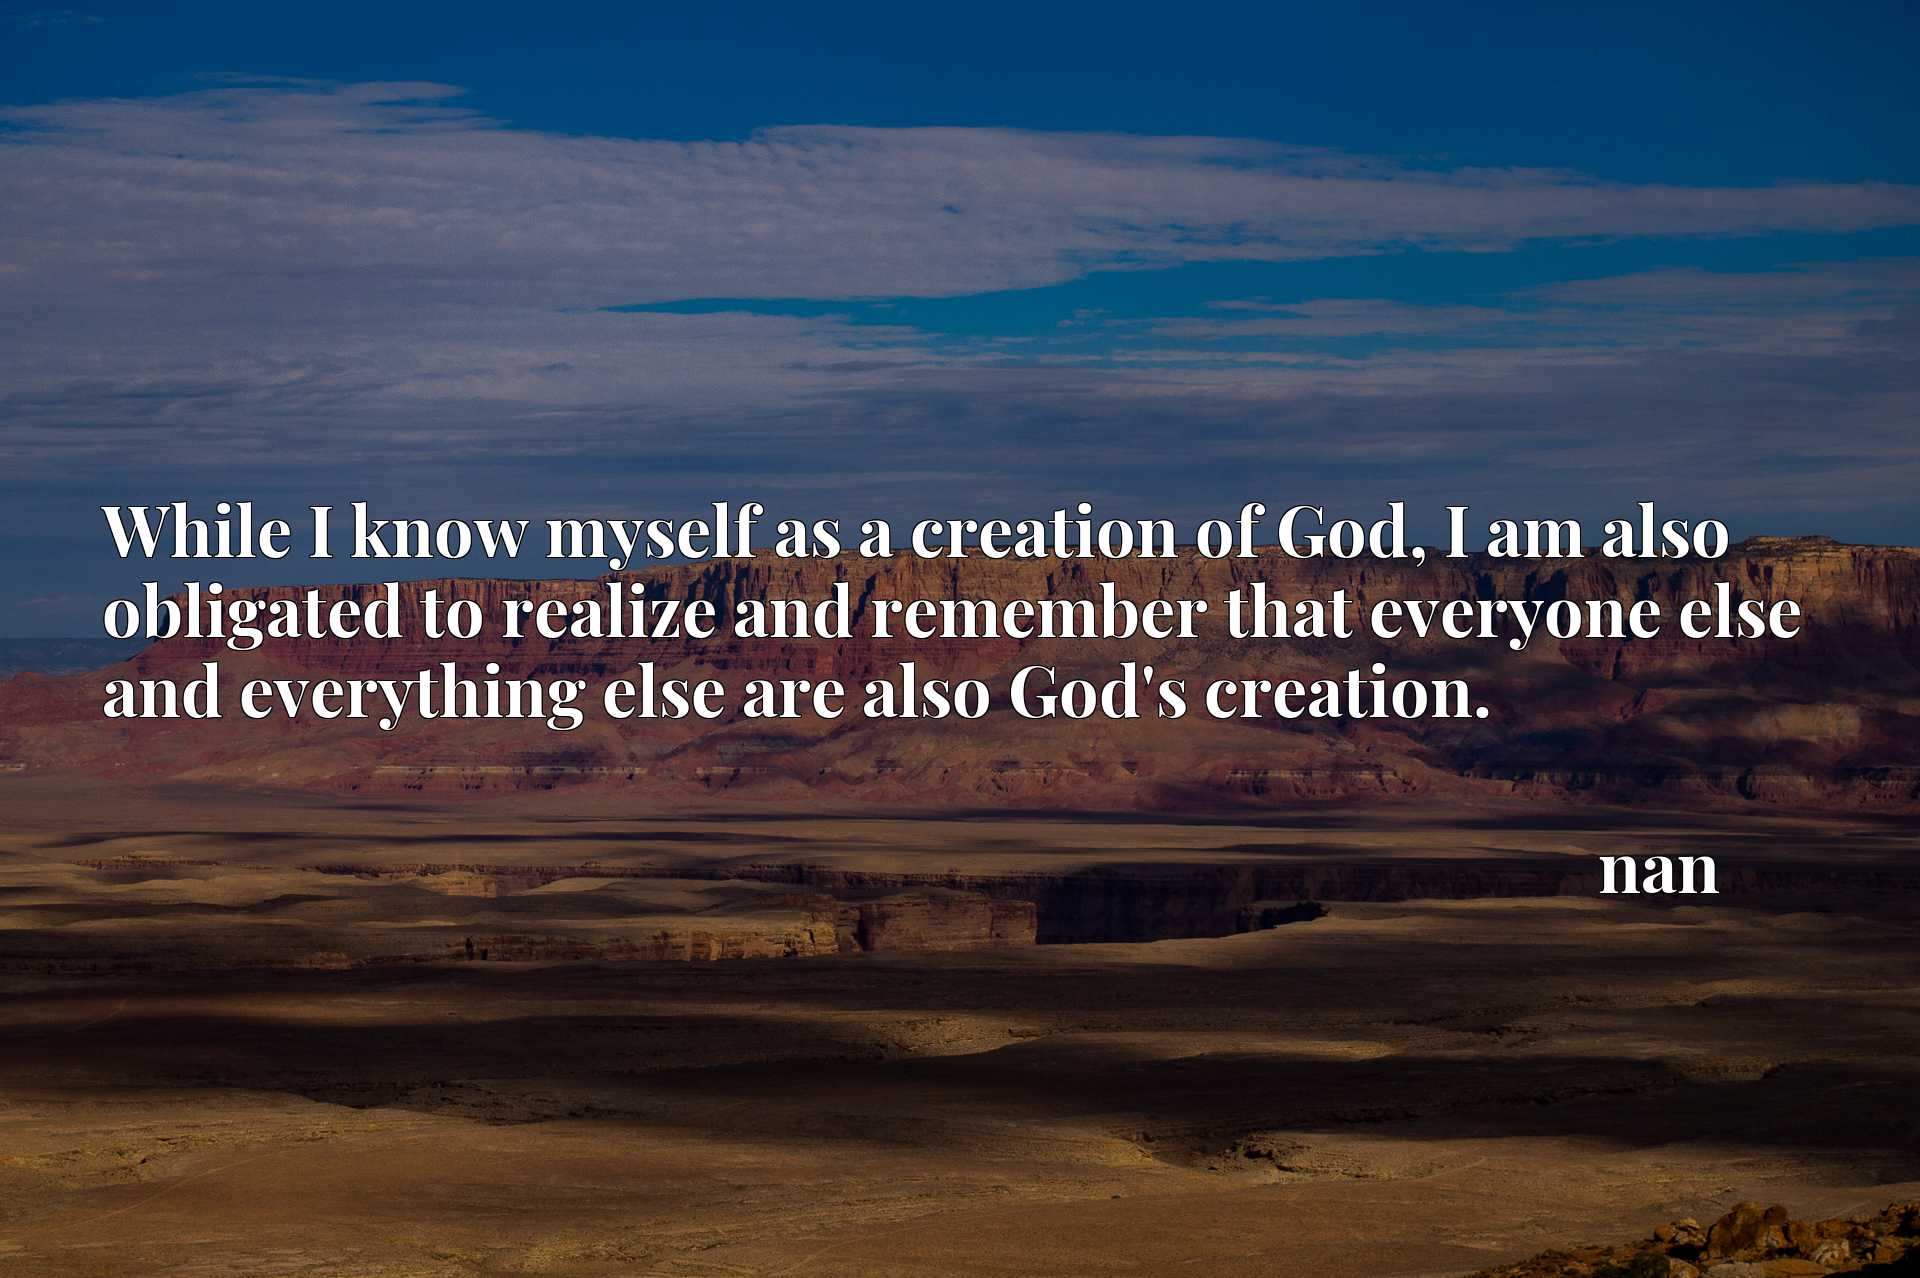 While I know myself as a creation of God, I am also obligated to realize and remember that everyone else and everything else are also God's creation.